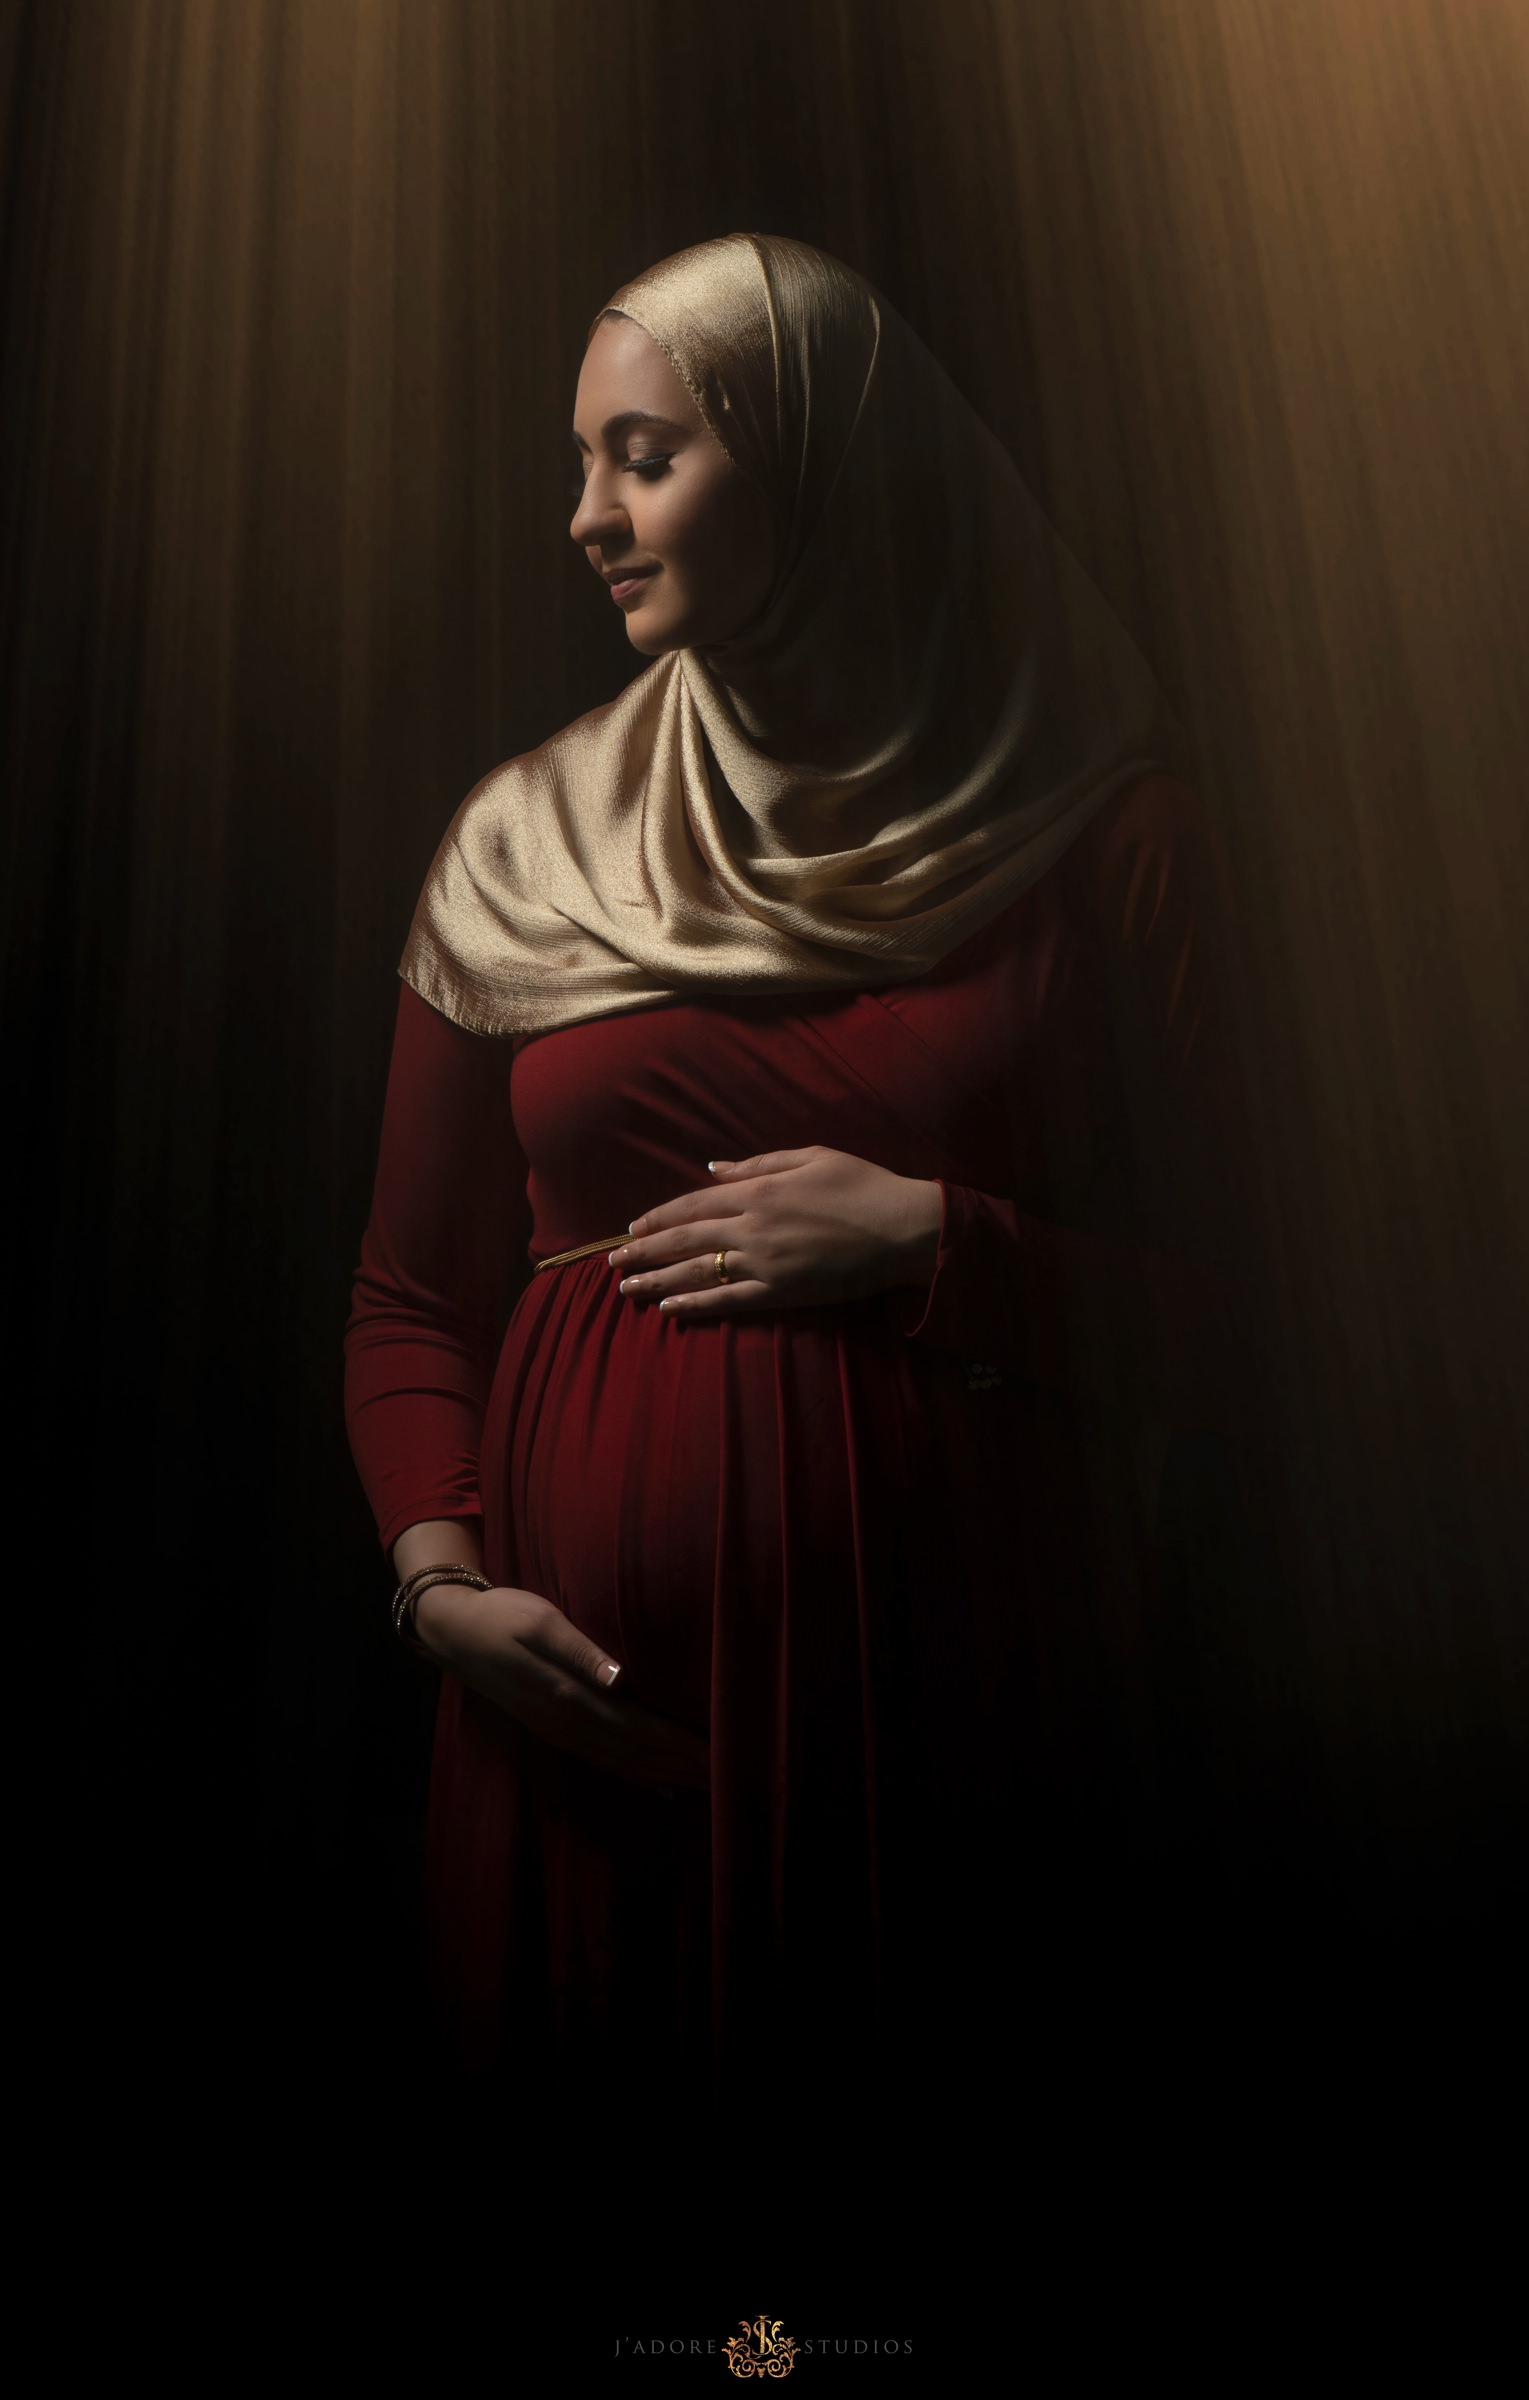 Pregnant woman wearing red dress in ray of sunshine in front of black wall